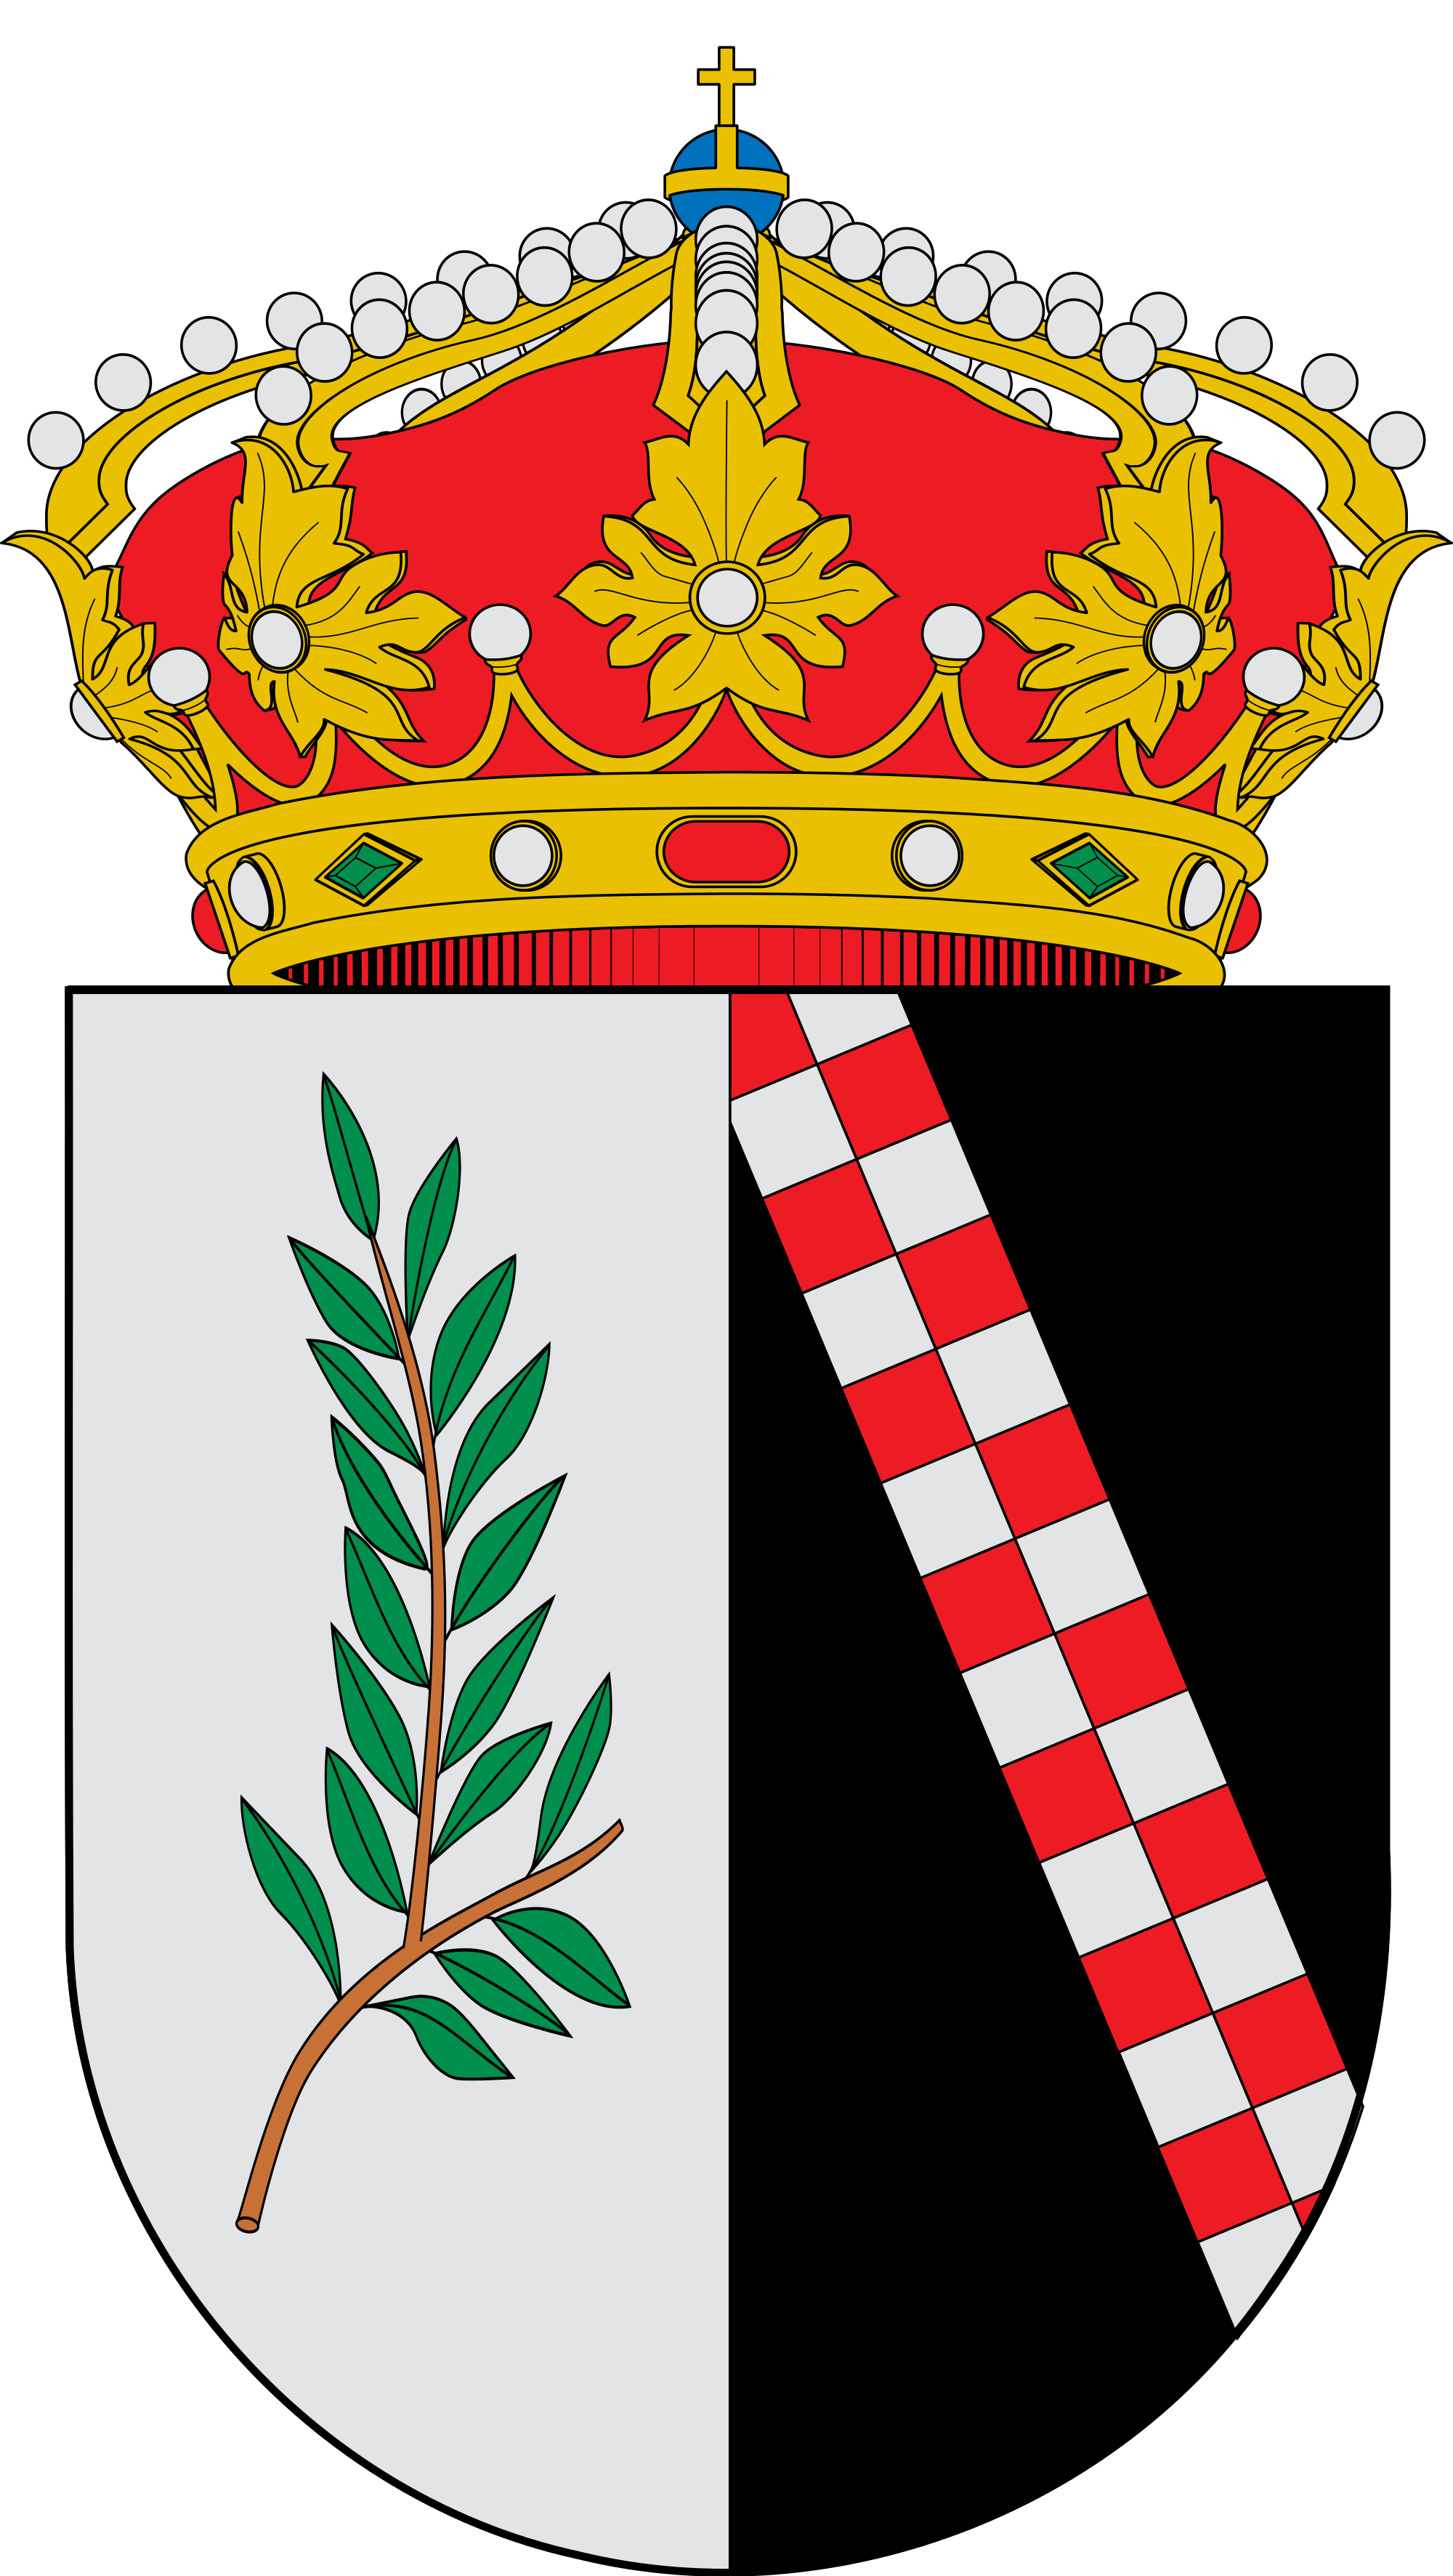 File:Escudo de Portillo de Toledo.svg.